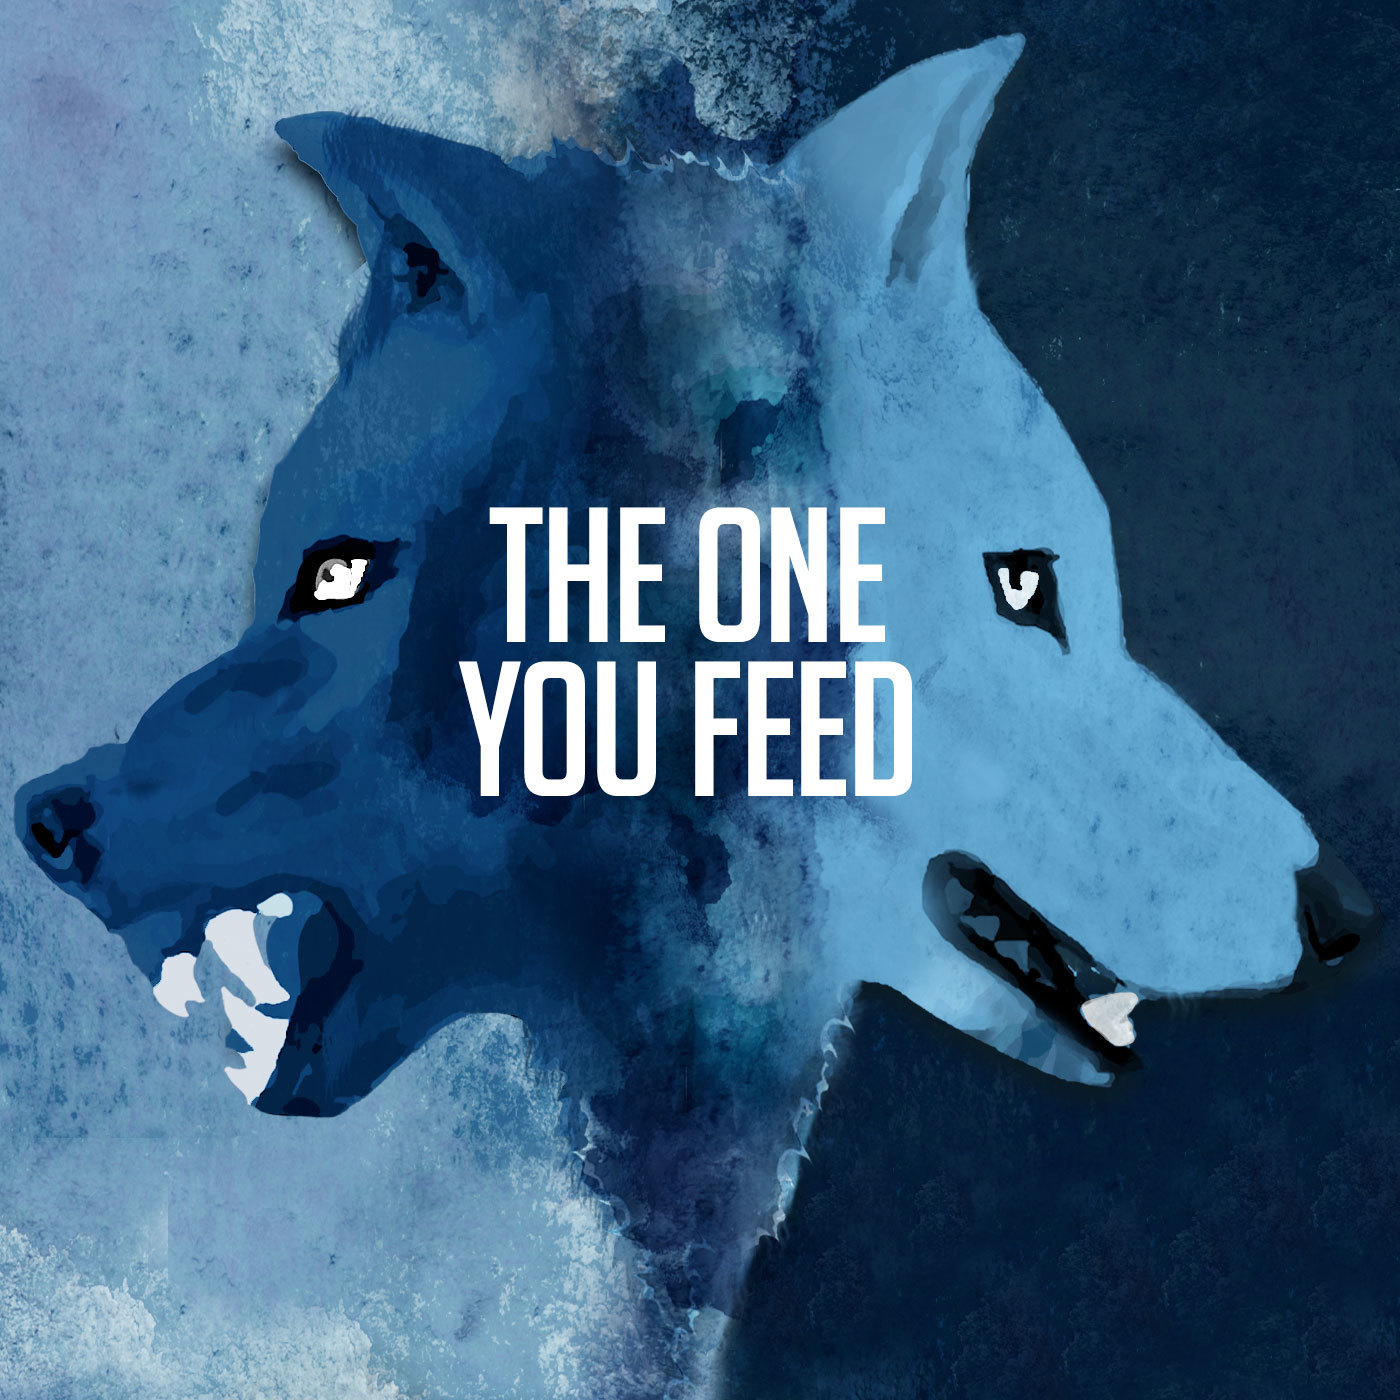 The One You Feed - Learn Good Habits to Increase Mindfulness and Happiness and Decrease Anxiety and Depression